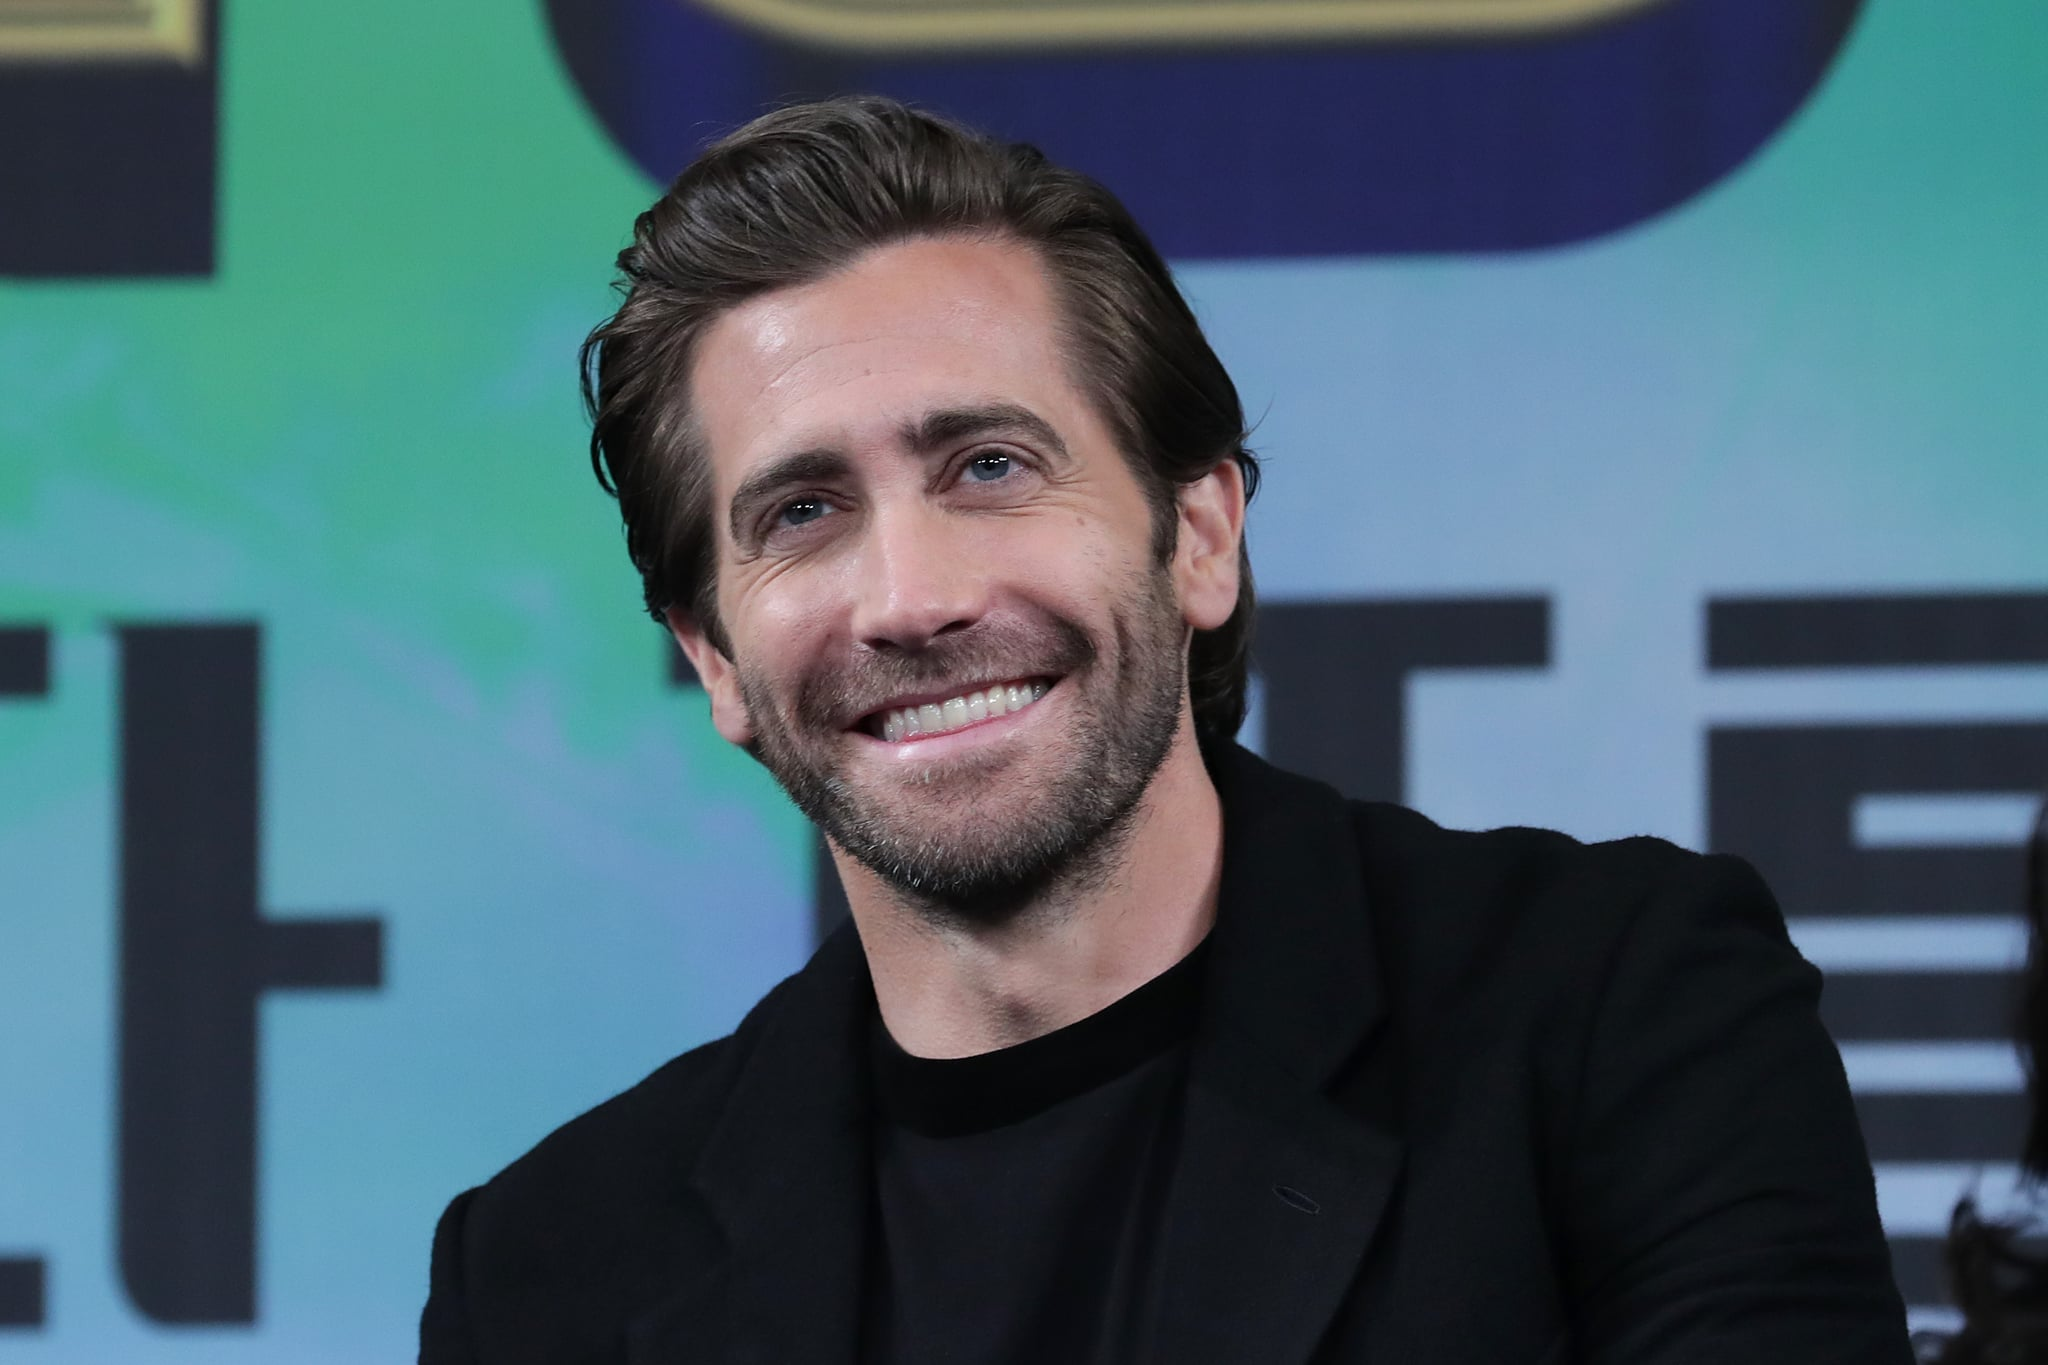 SEOUL, SOUTH KOREA - JULY 01: Actor Jake Gyllenhaal attends the press conference for 'Spider-Man: Far From Home' Seoul premiere on July 01, 2019 in Seoul, South Korea. (Photo by Han Myung-Gu/WireImage)